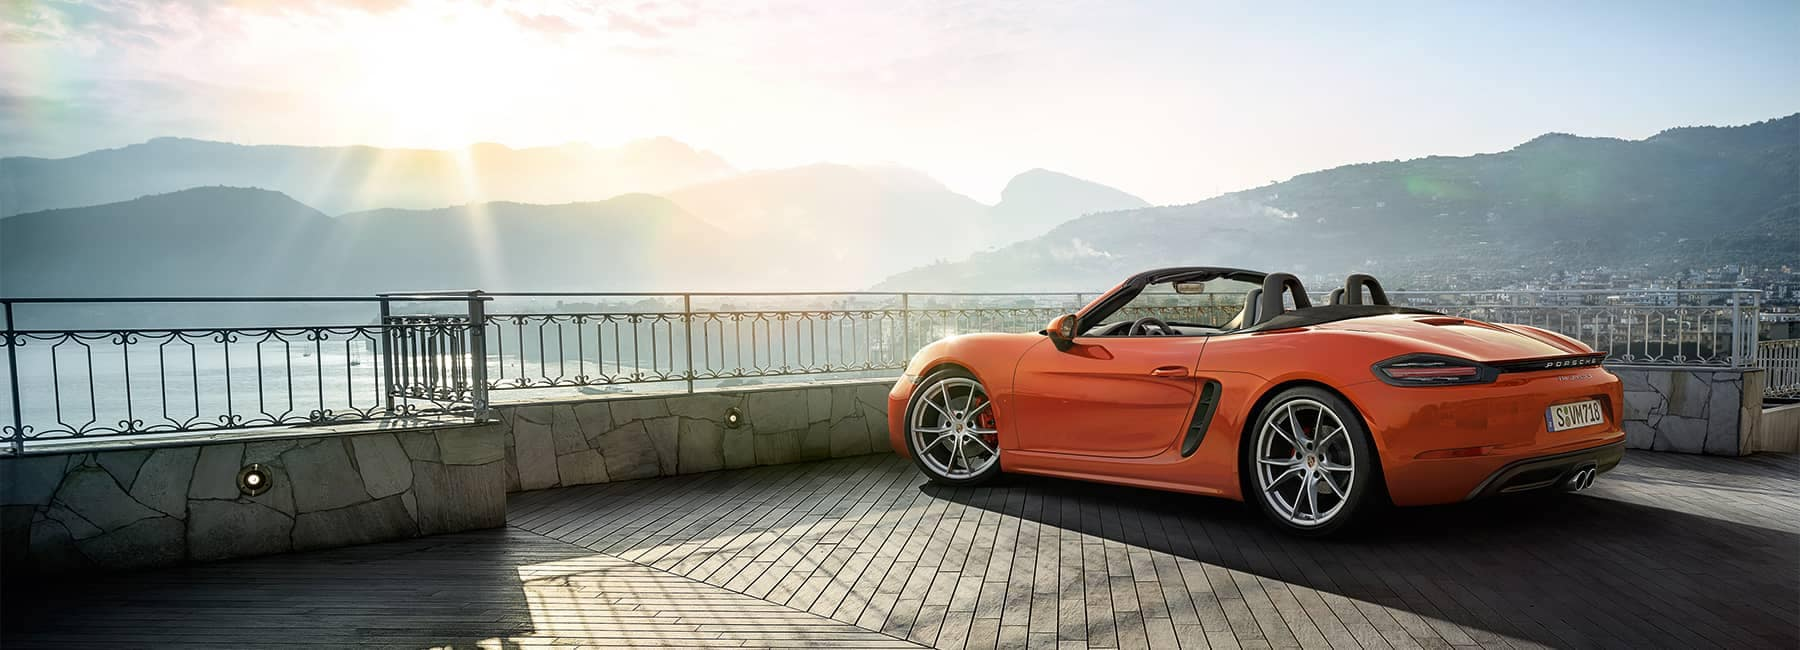 2017-718-Boxster-S-2